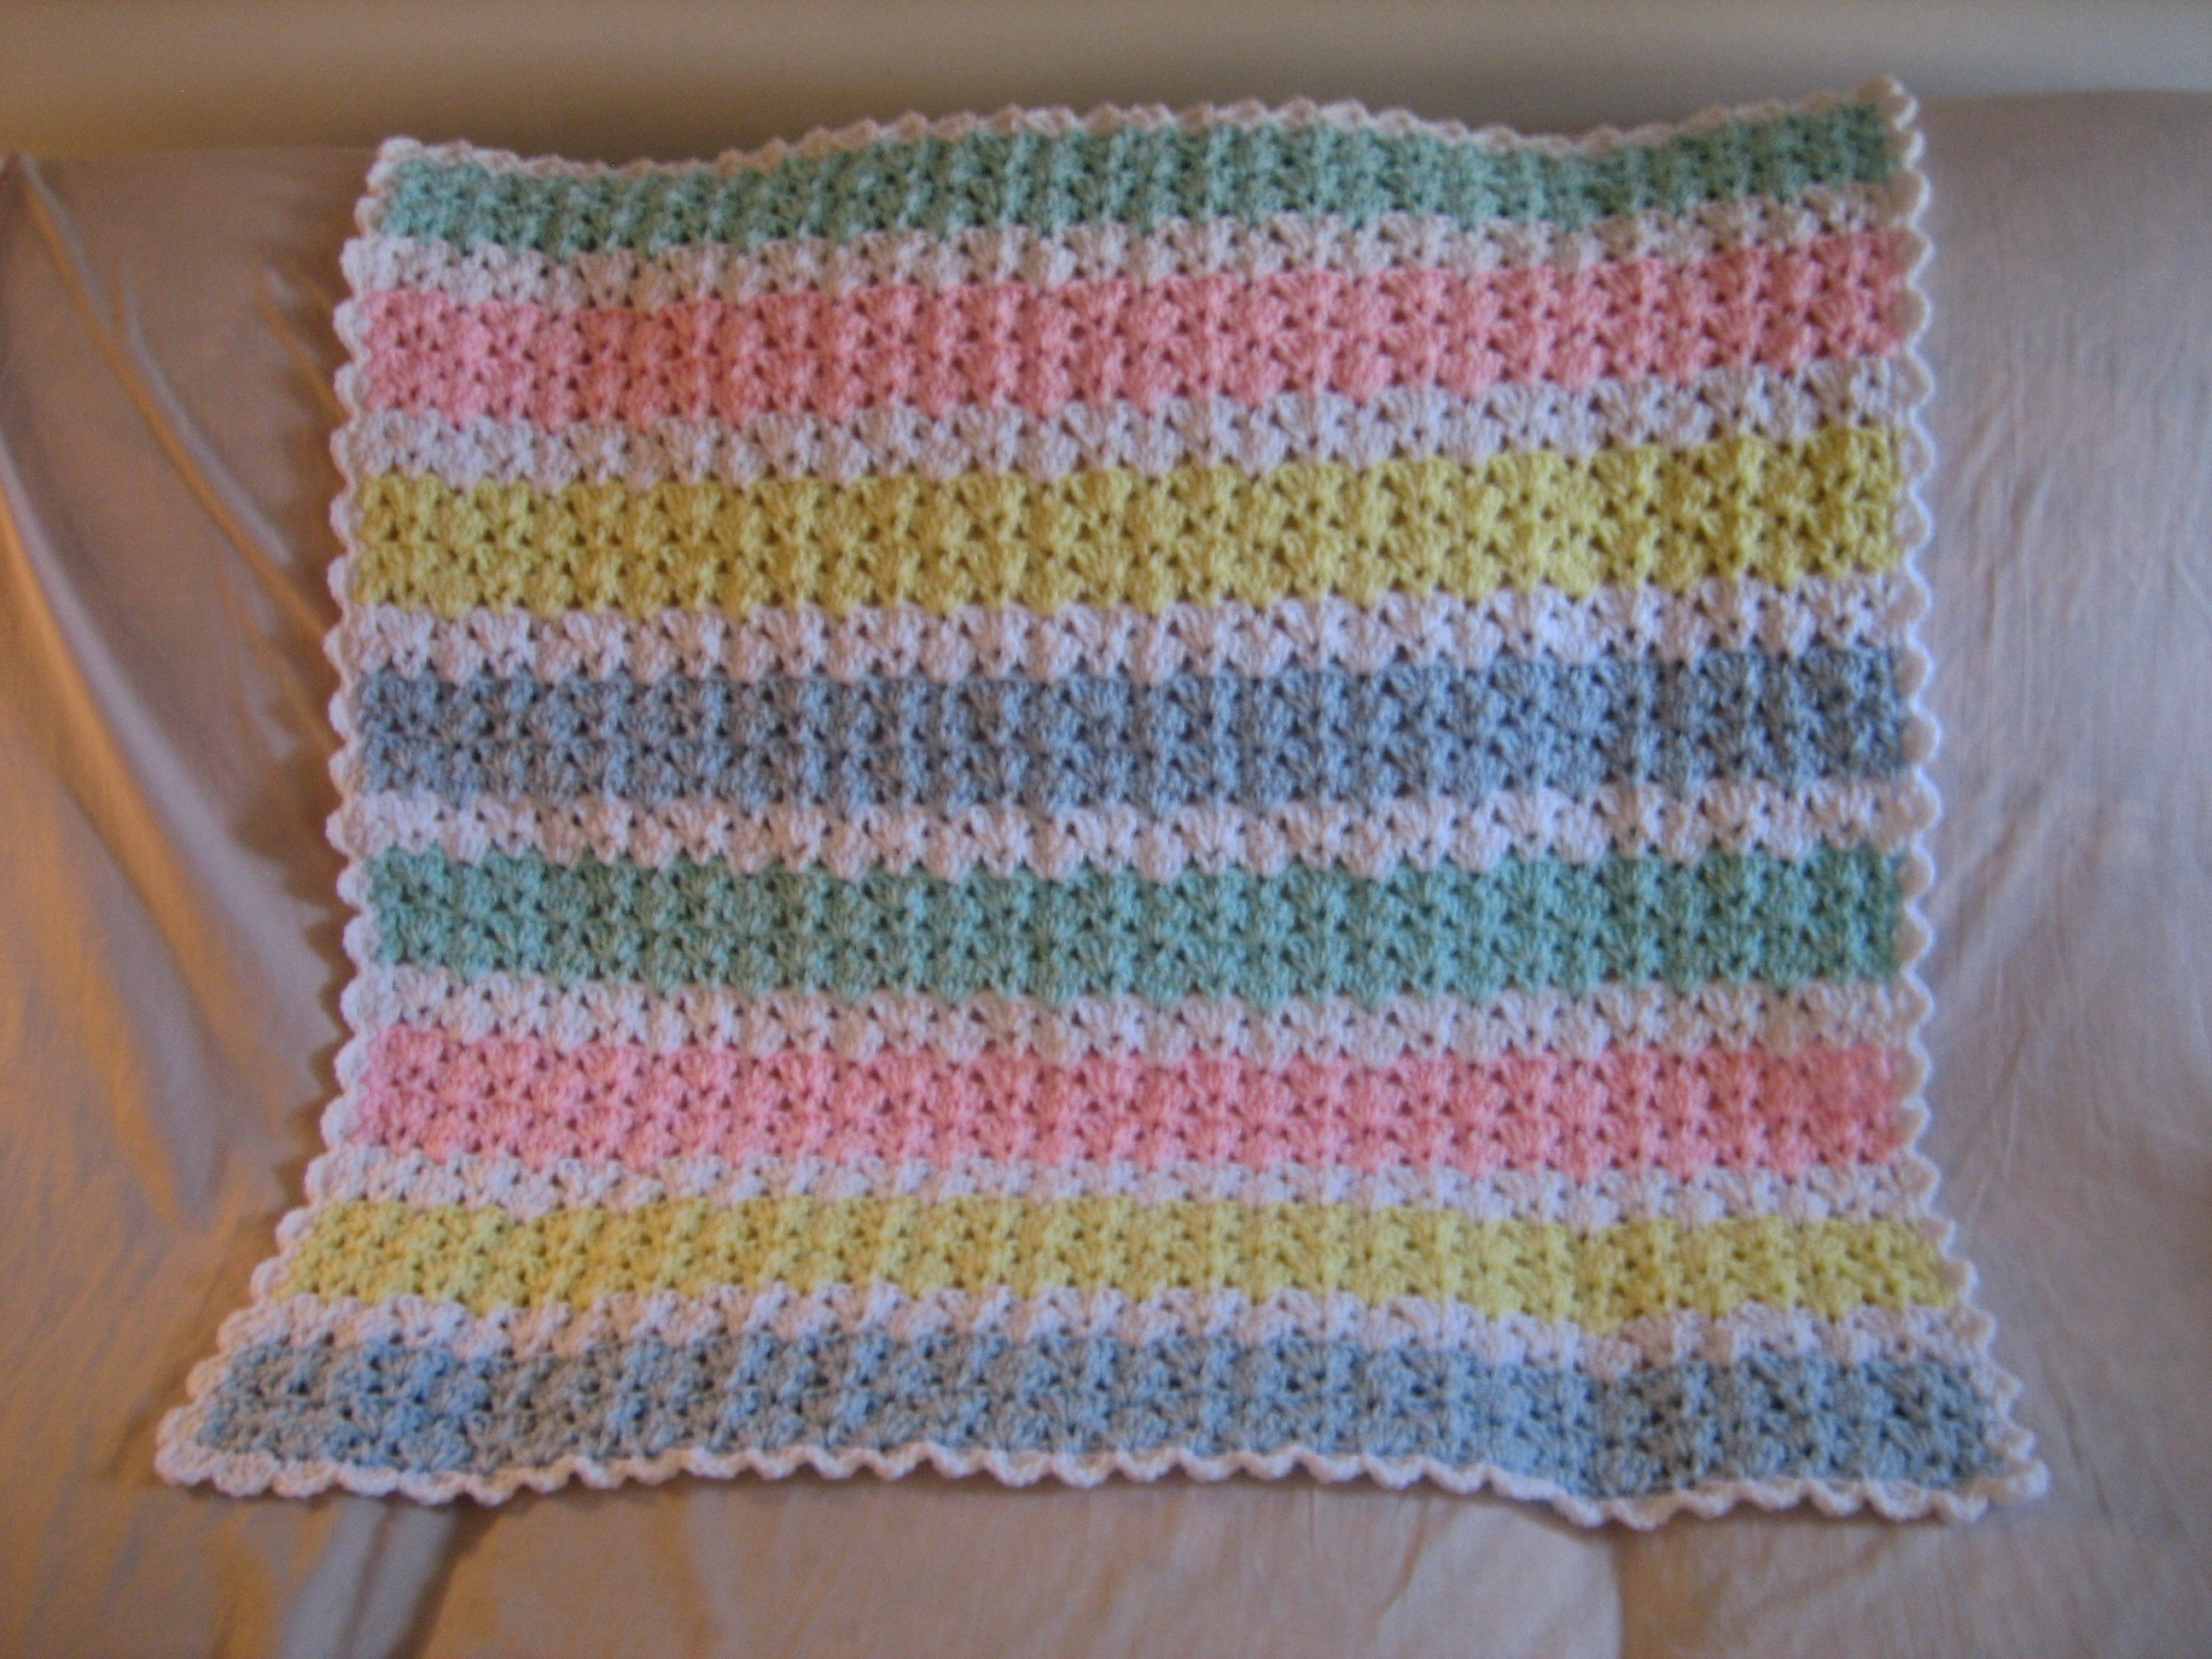 Free Crochet Baby Blanket Patterns Unique Pastel Baby Afghan Pattern Of Superb 45 Pics Free Crochet Baby Blanket Patterns